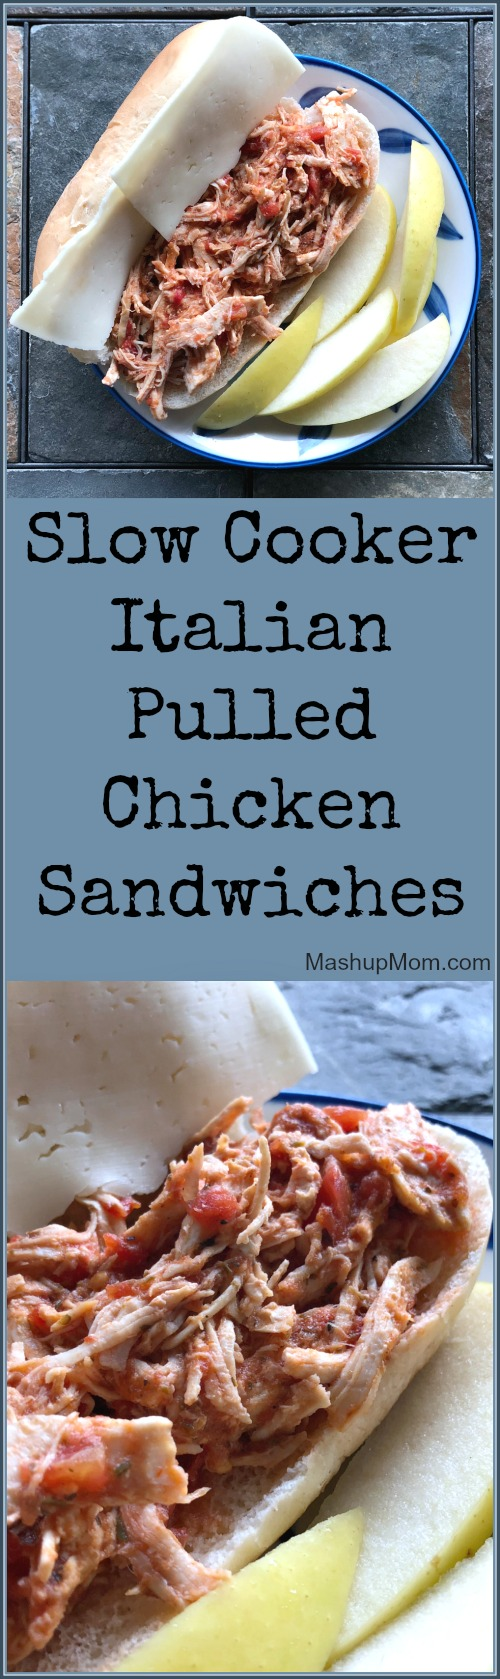 slow cooker pulled Italian chicken sandwiches